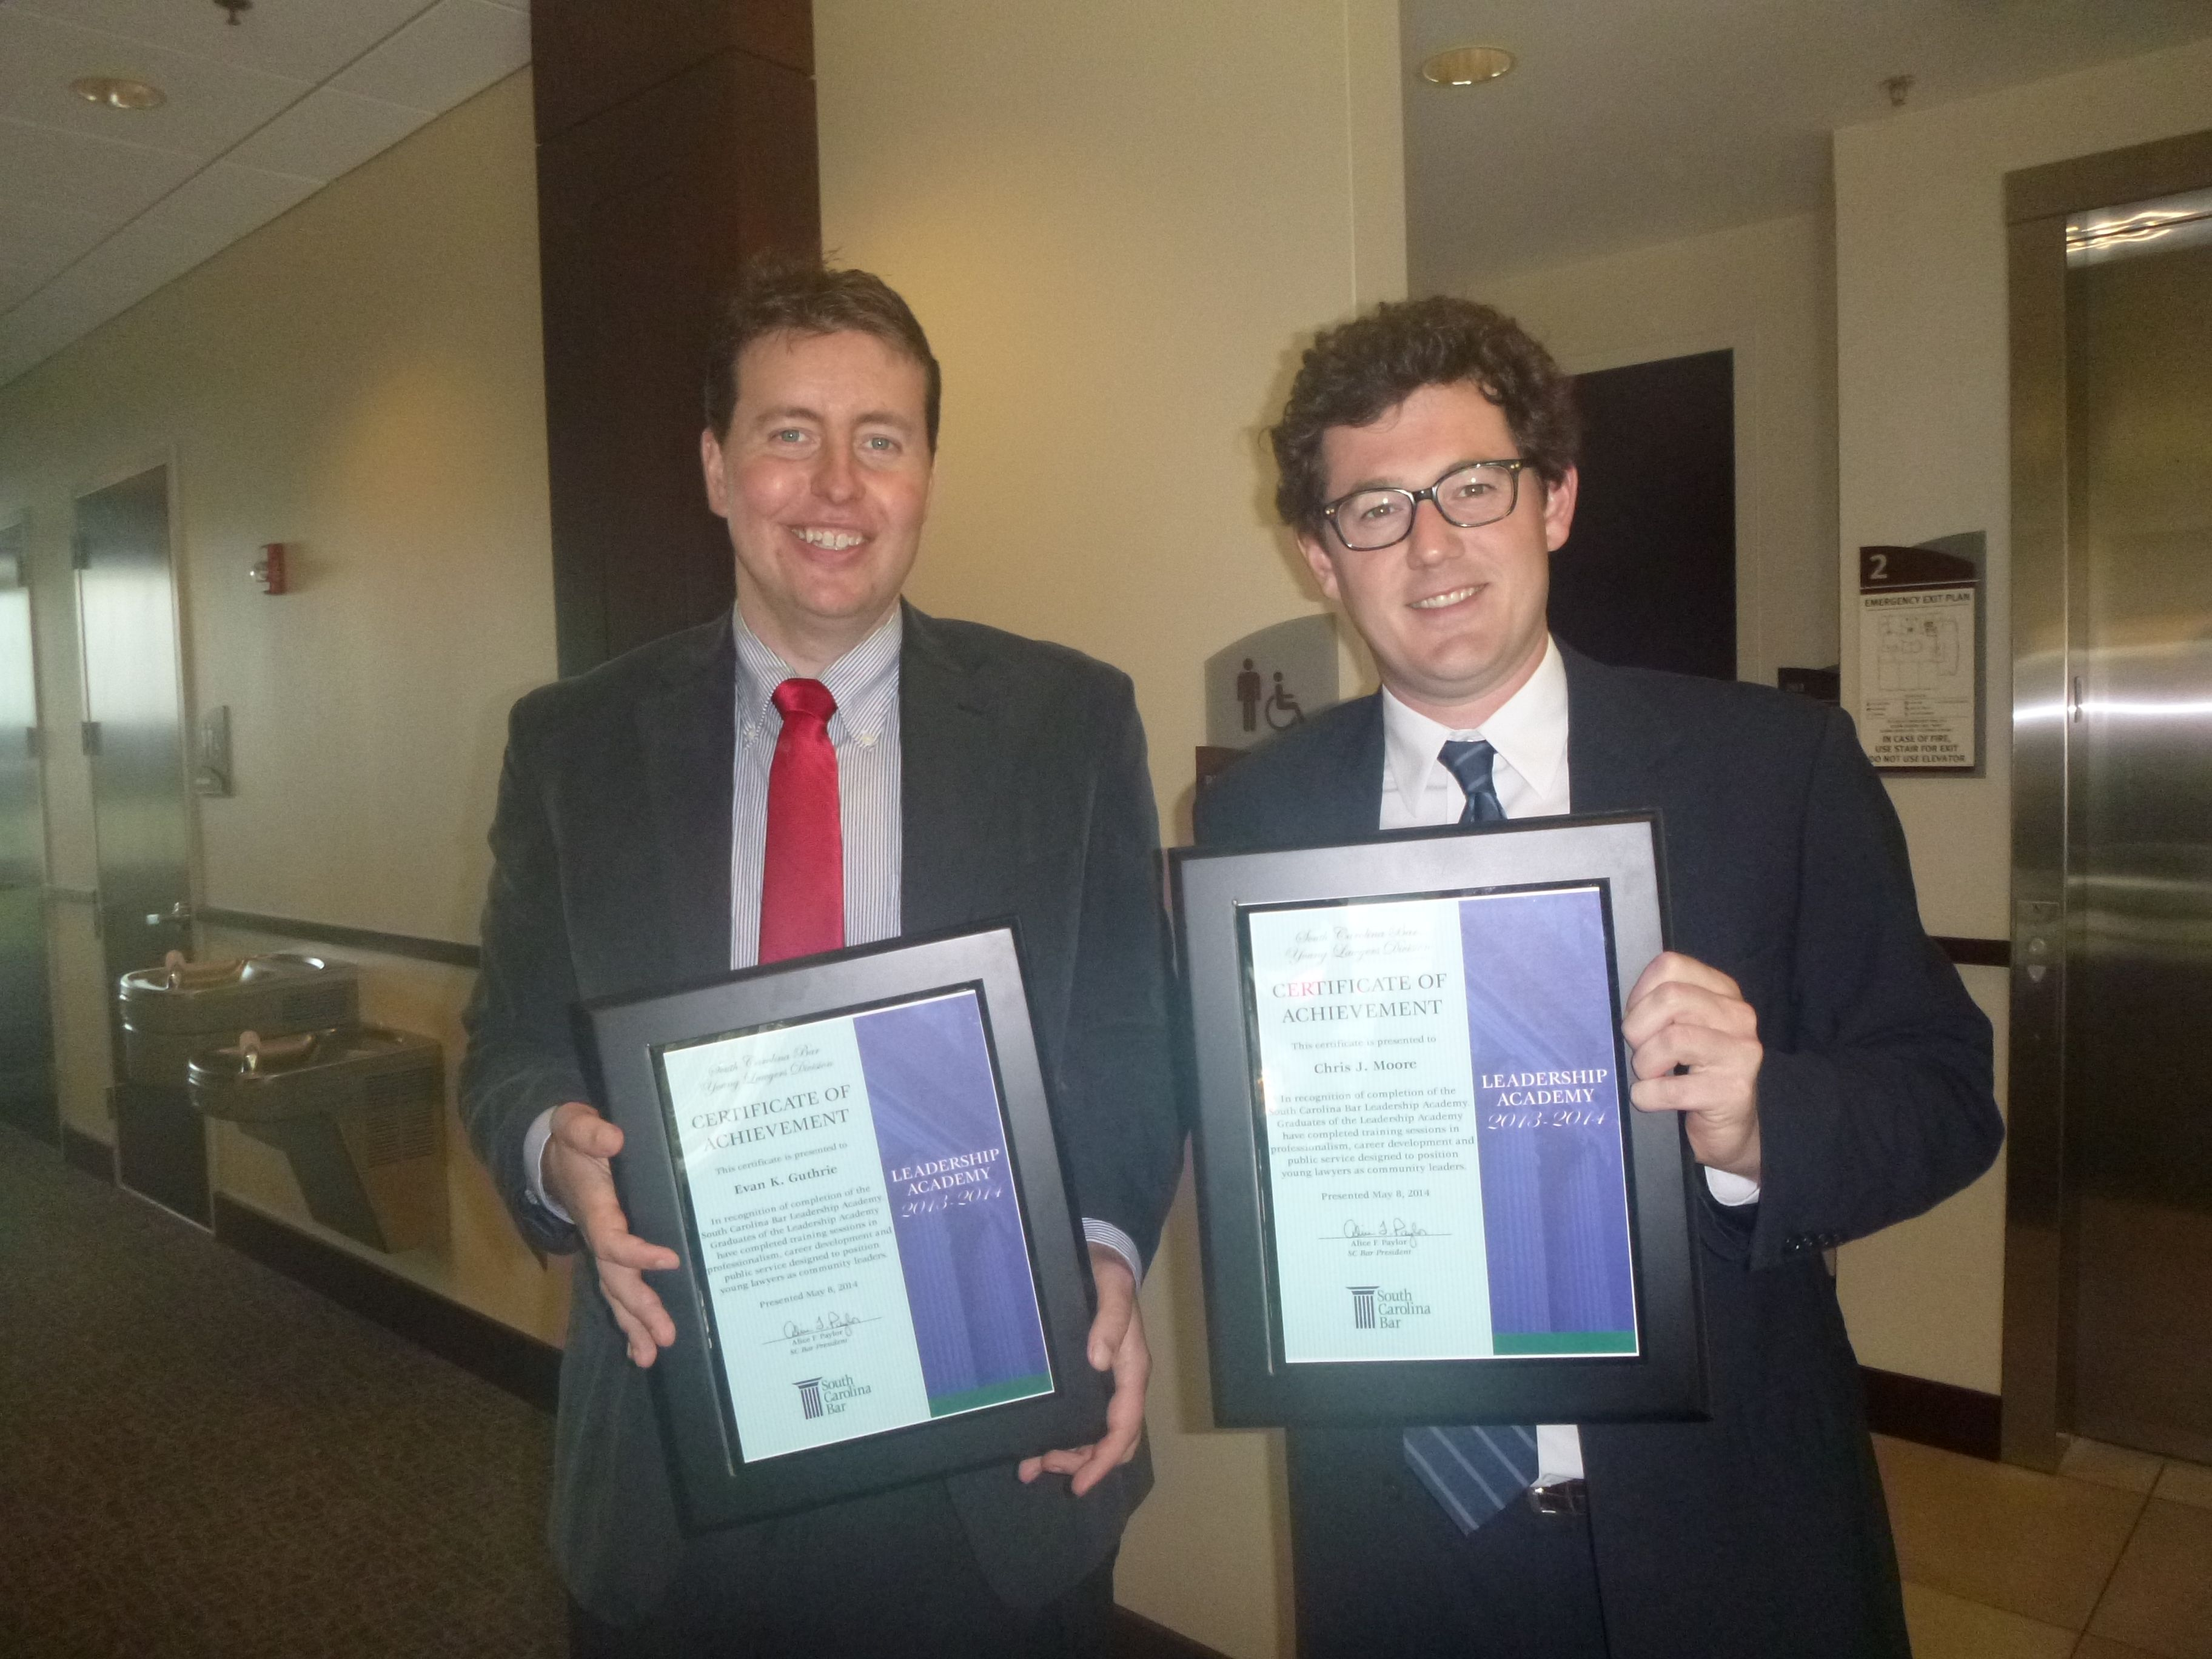 Lawyer Evan Guthrie With Chris Moore Of Richardson Patrick As The South Carolina Bar Leadership Academy Graduates New Law Certificate Of Achievement Law Firm